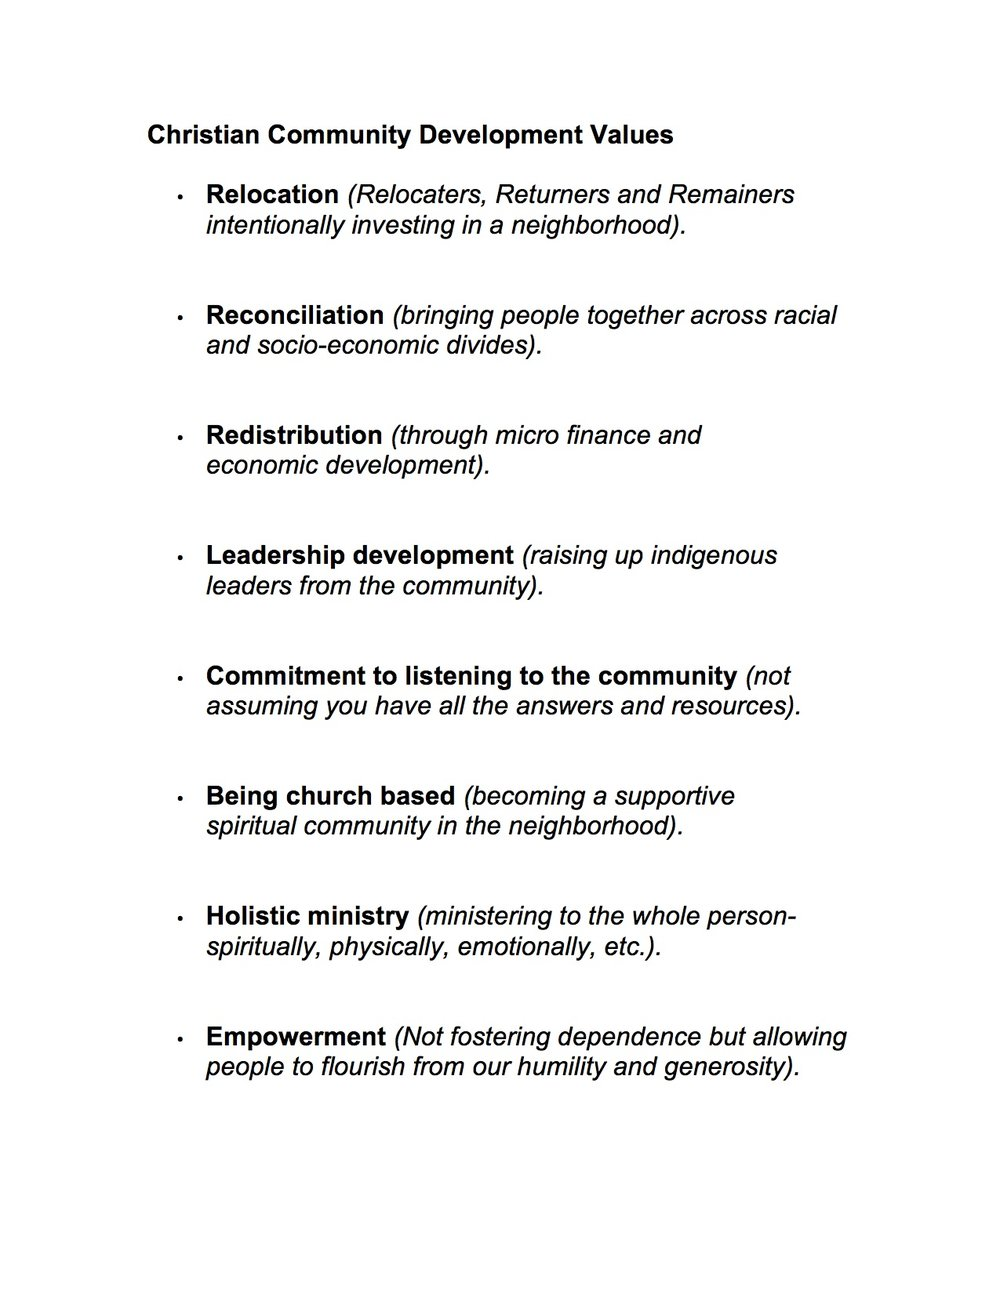 Christian Community Development Values.jpg